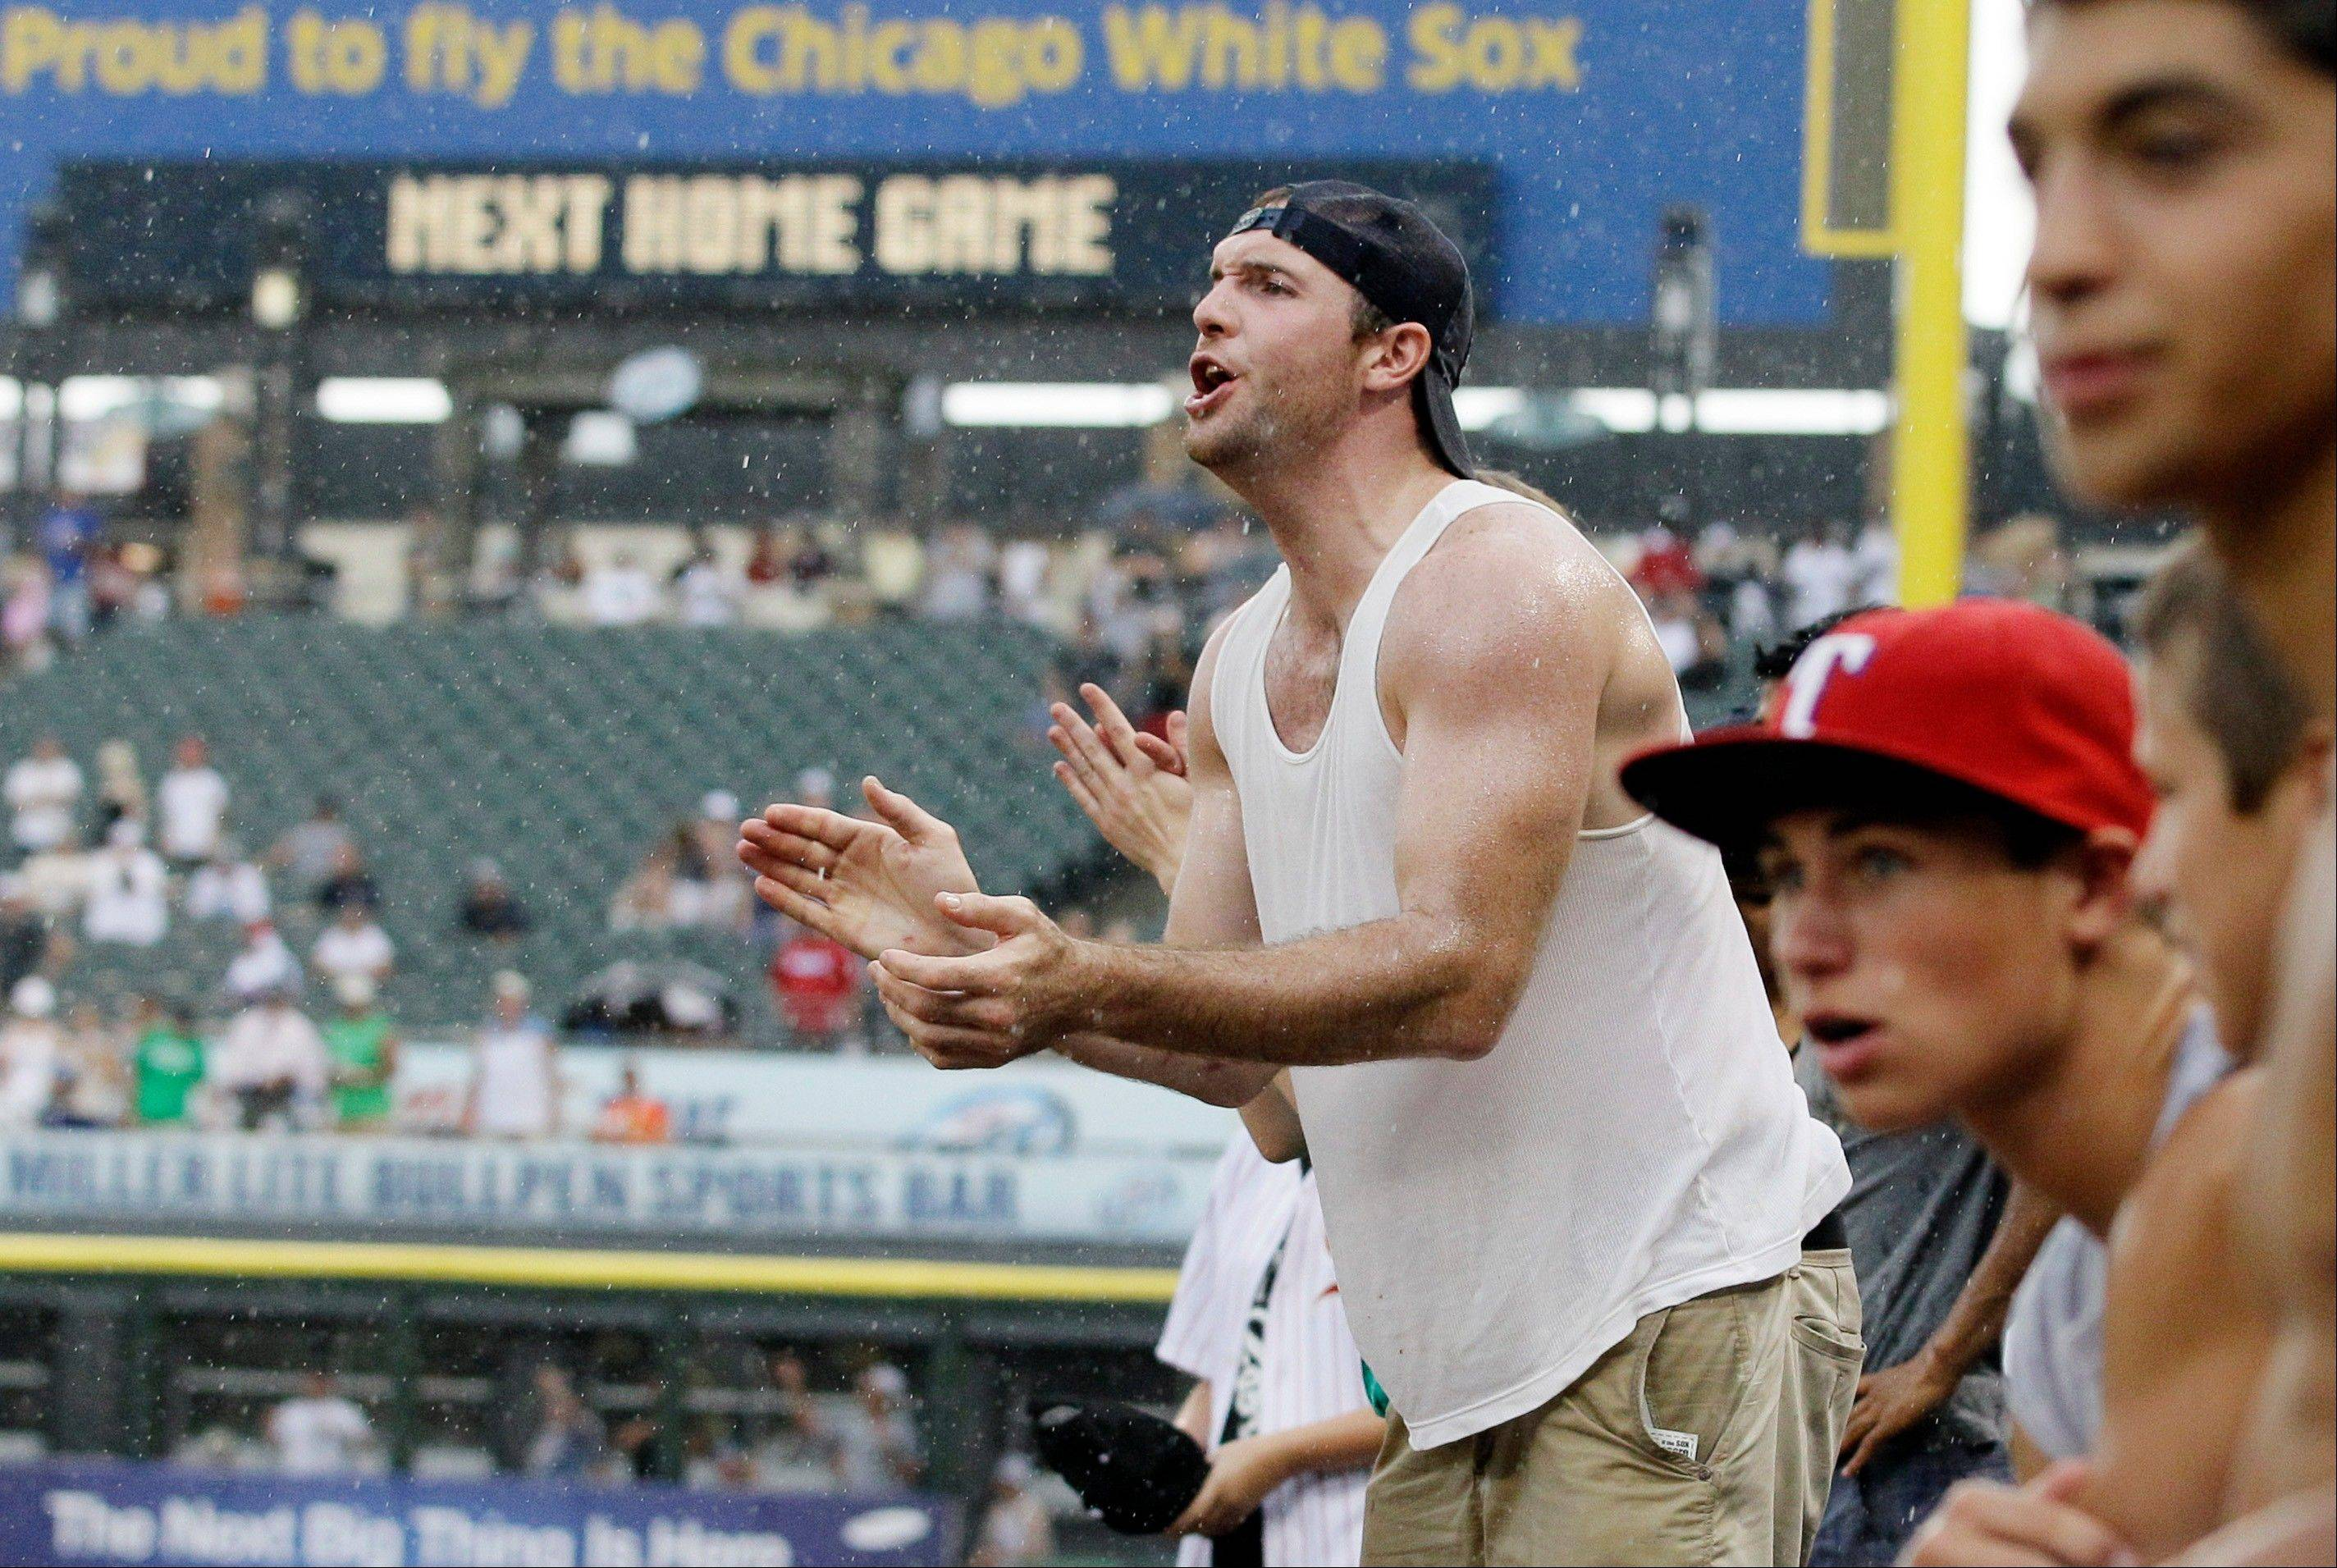 White Sox slash ticket prices; payroll next?